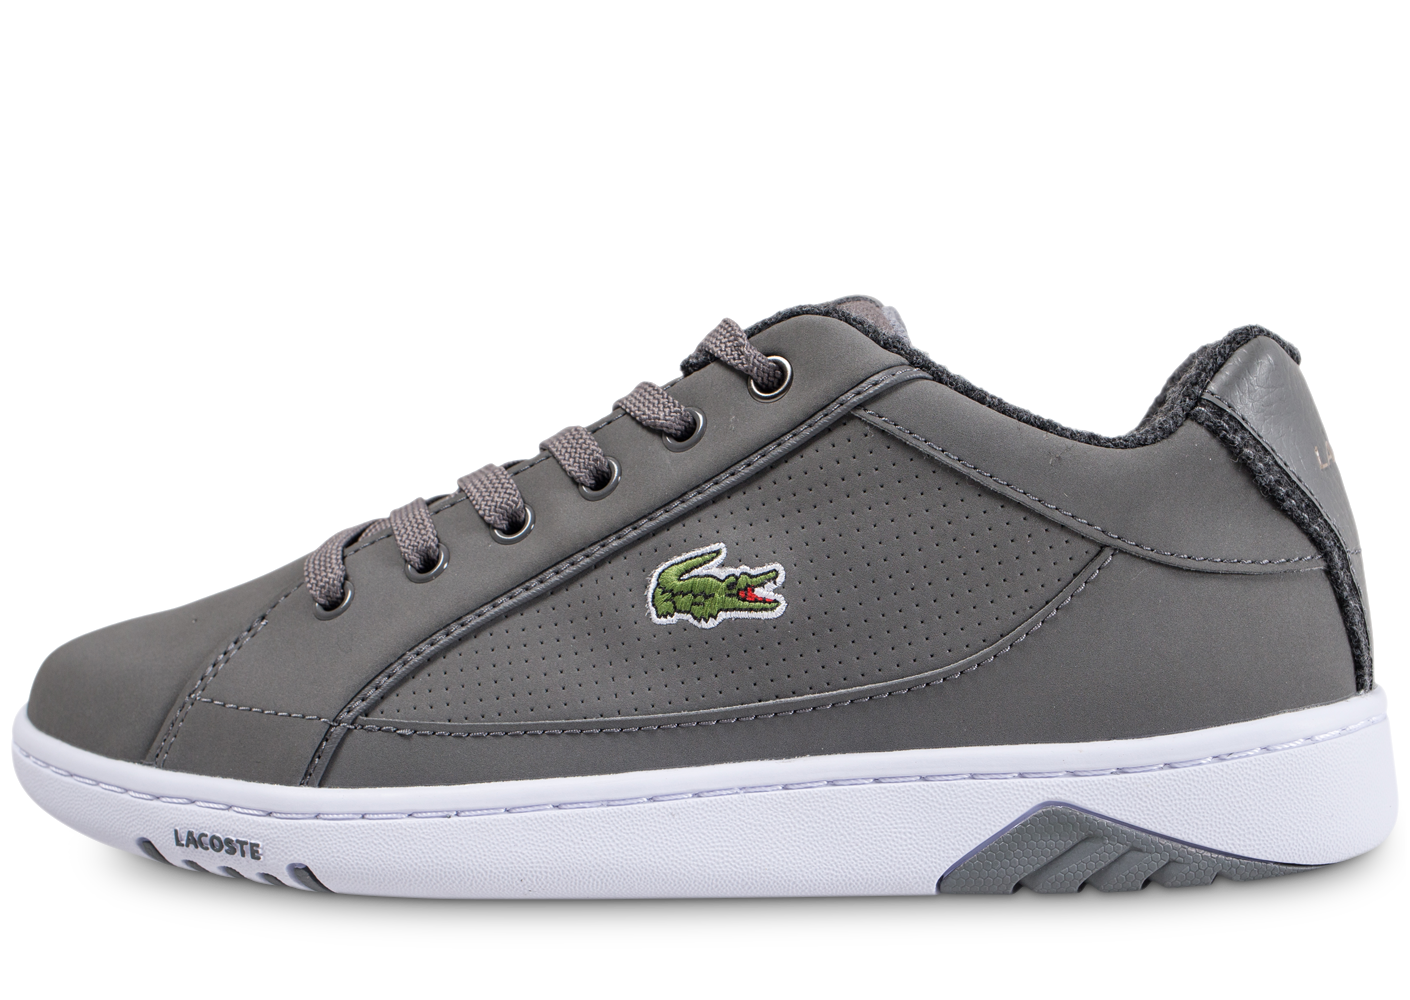 Lacoste Homme Deviation Grise Baskets